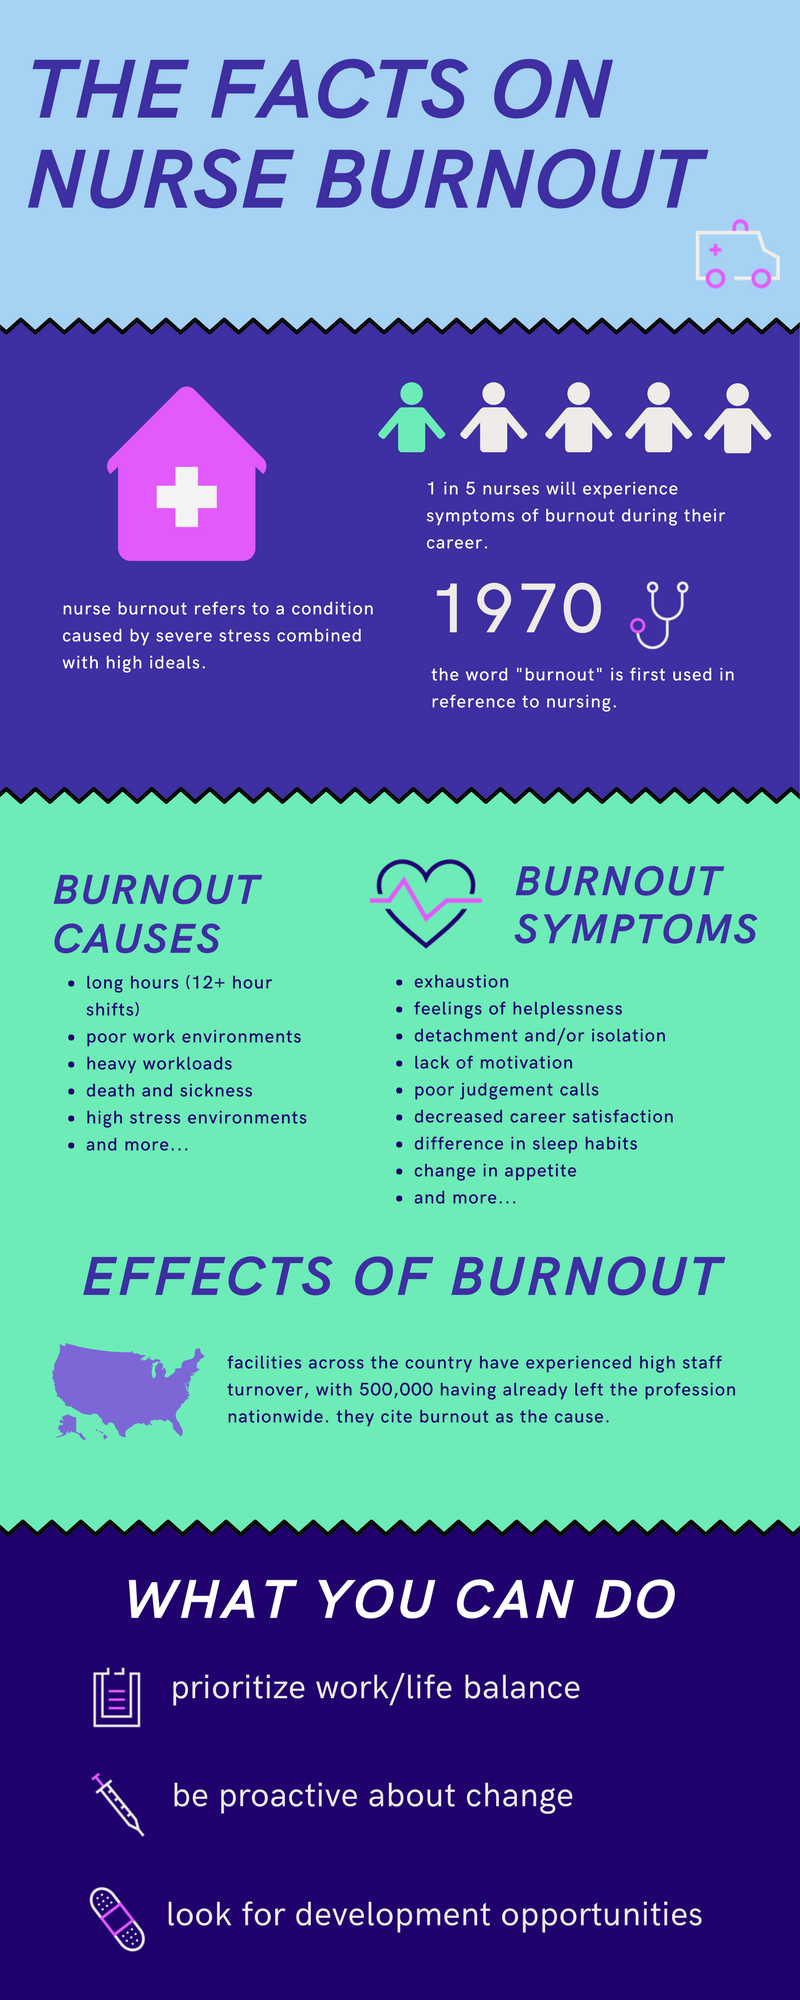 The Facts onnurse burnout